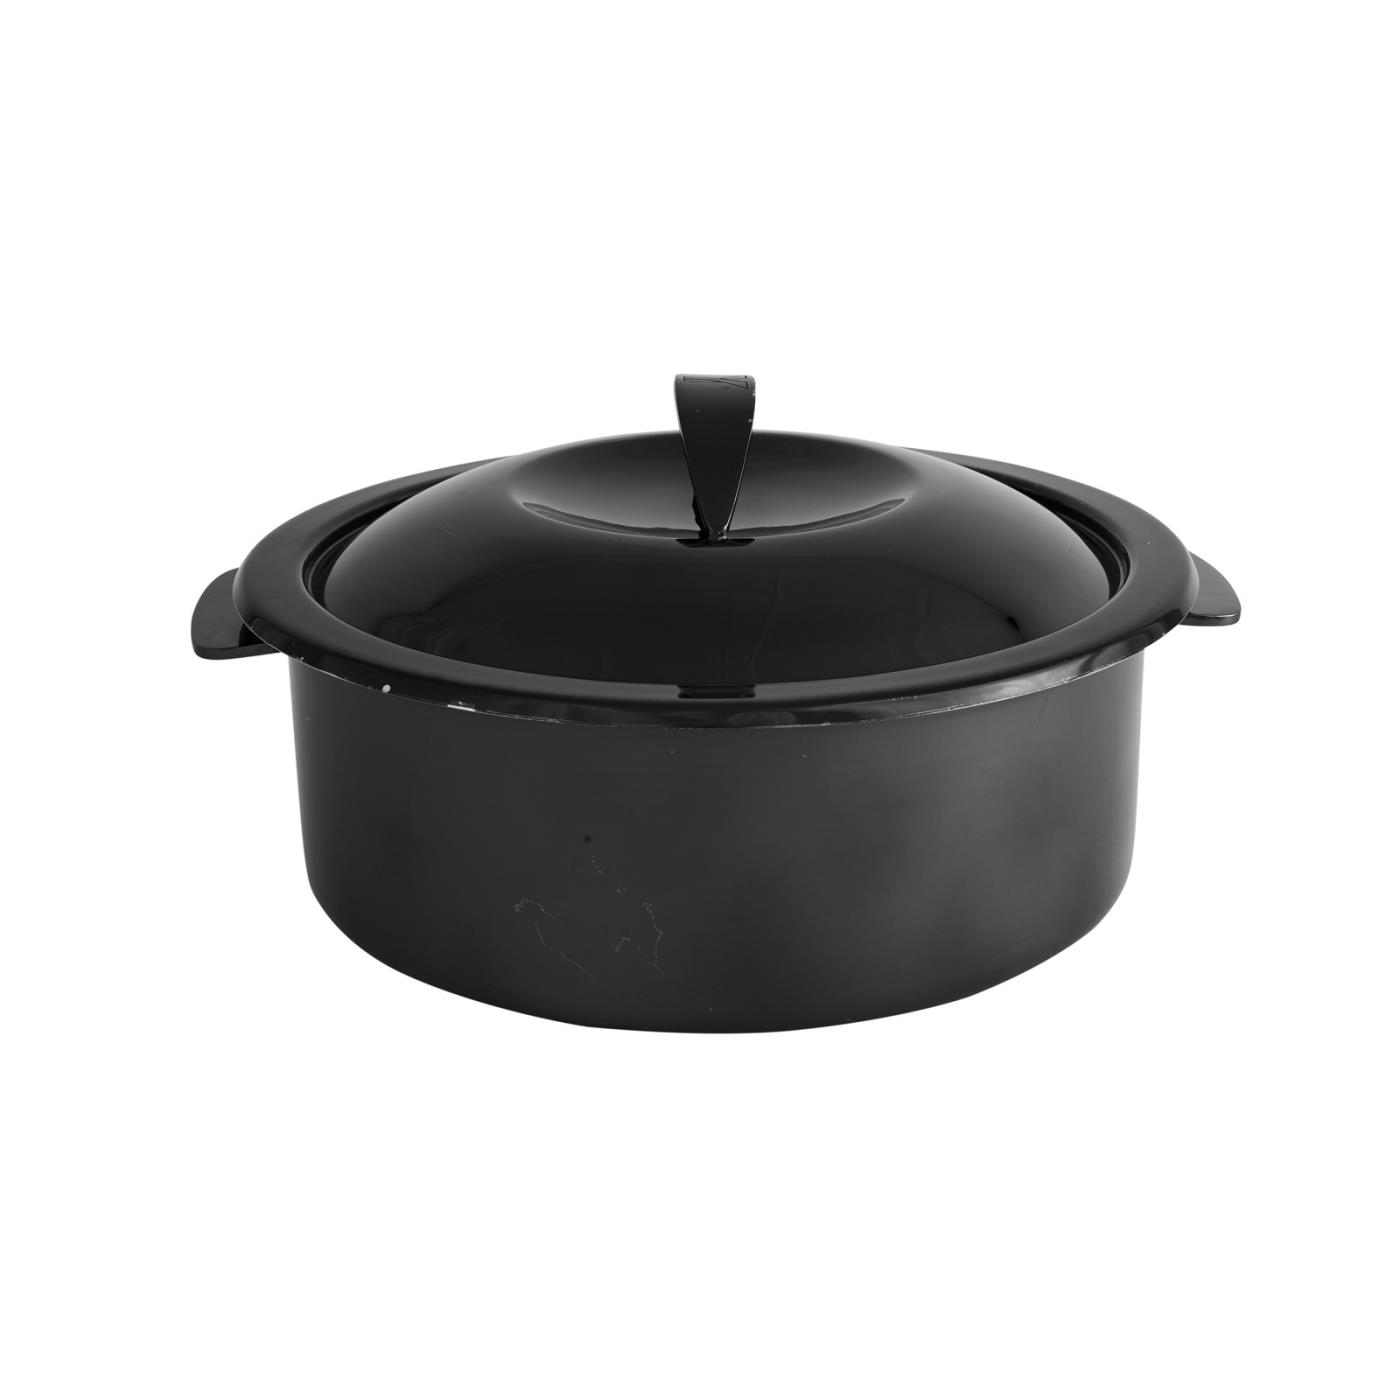 Titanium Round Dutch Oven